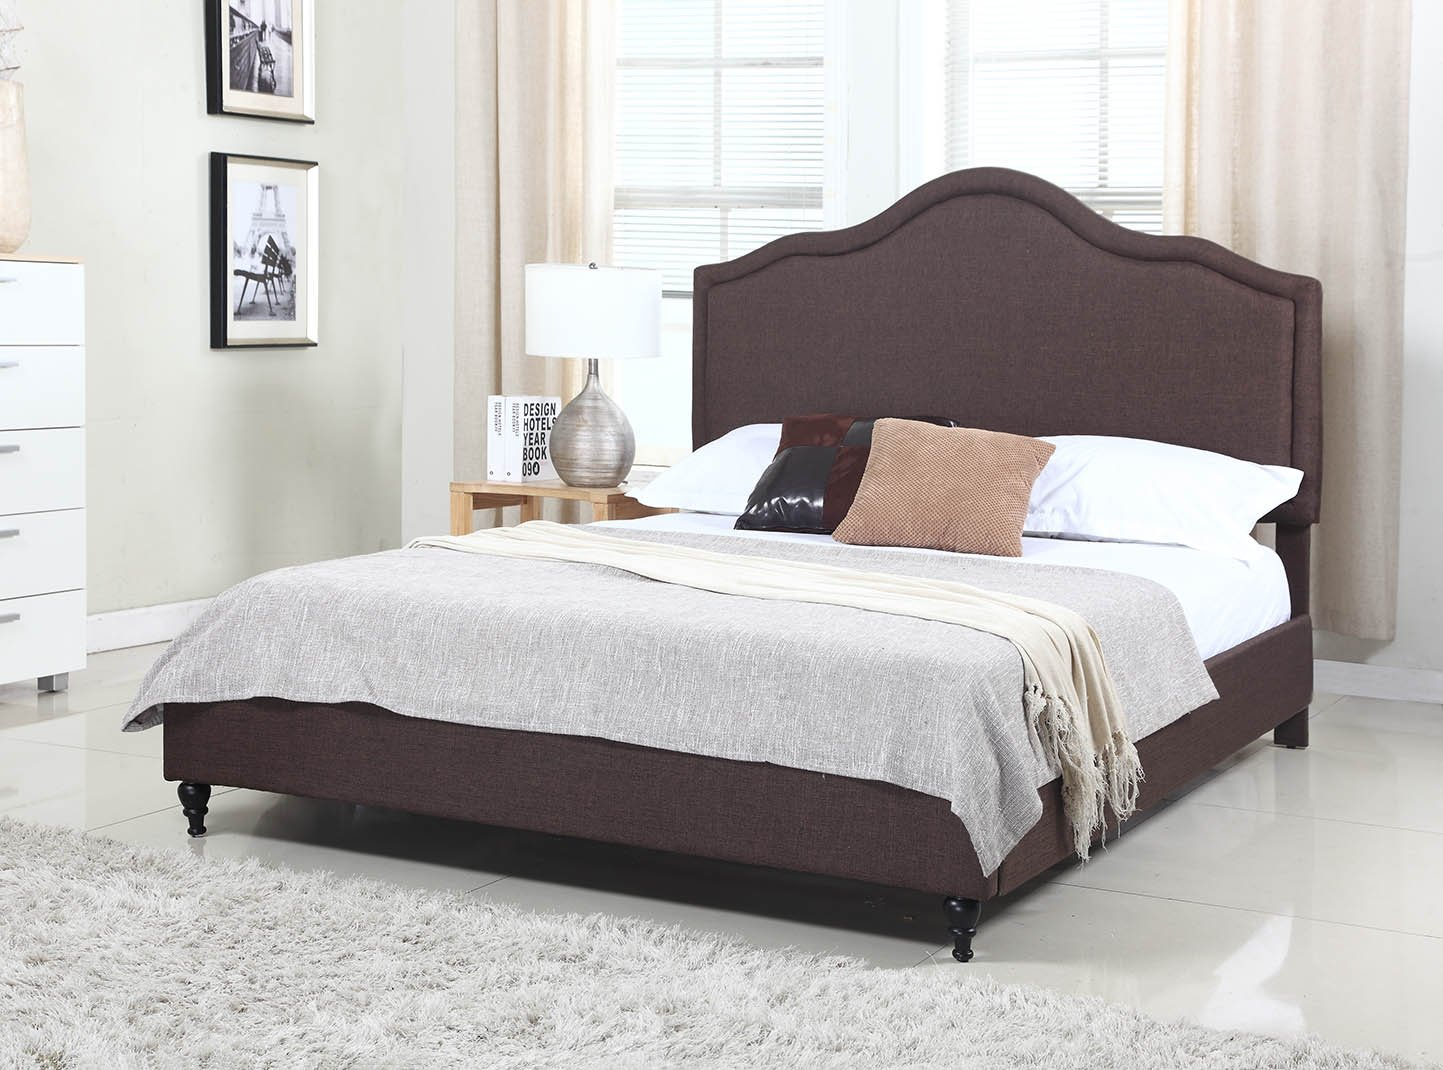 """Home Life Cloth Brown Linen 51"""" Tall Headboard Platform Bed with Slats King - Complete Bed 5 Year Warranty Included 009"""